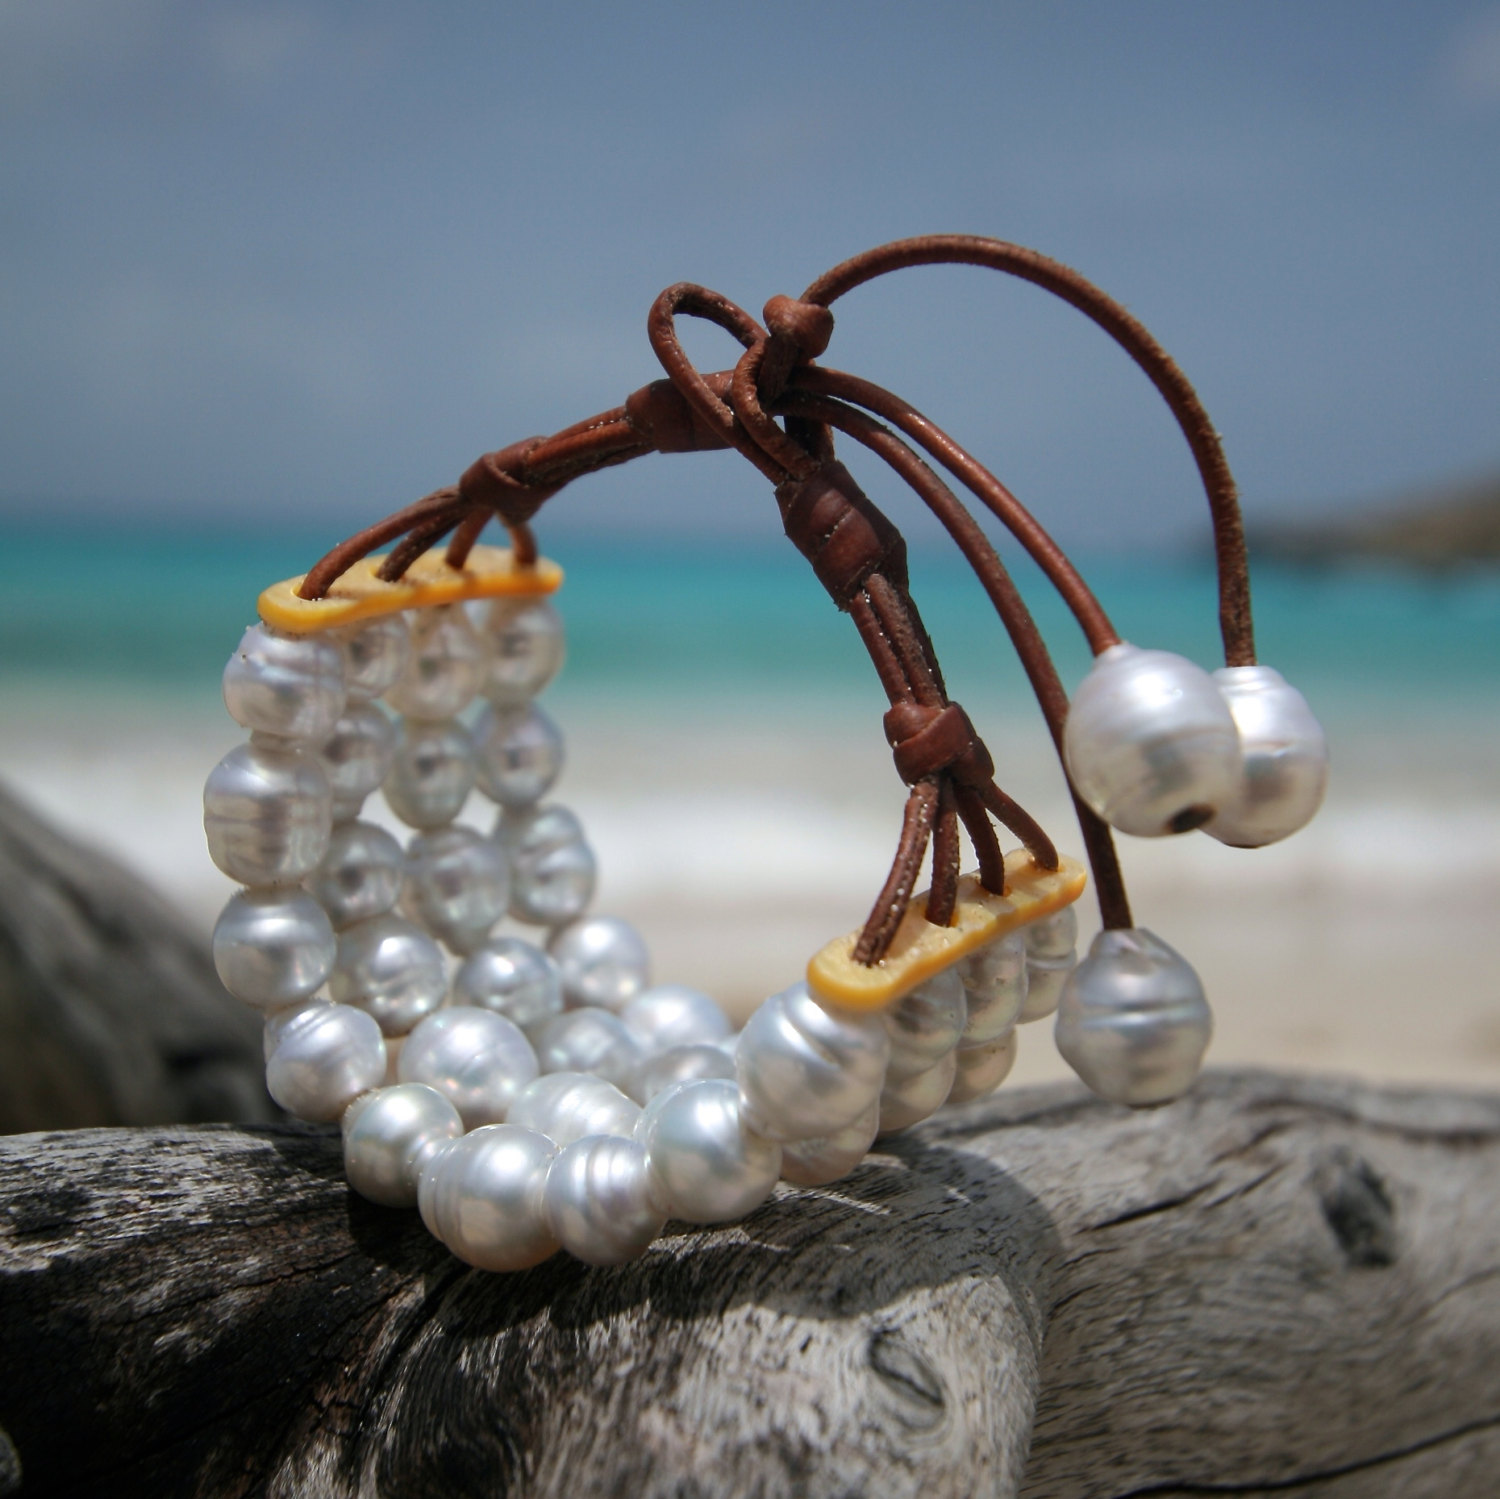 White Australian pearls 4 strands bracelet on leather with mother of pearls, beach jewelry, Saint Barth, bohemian chic, boho, cultured pearl